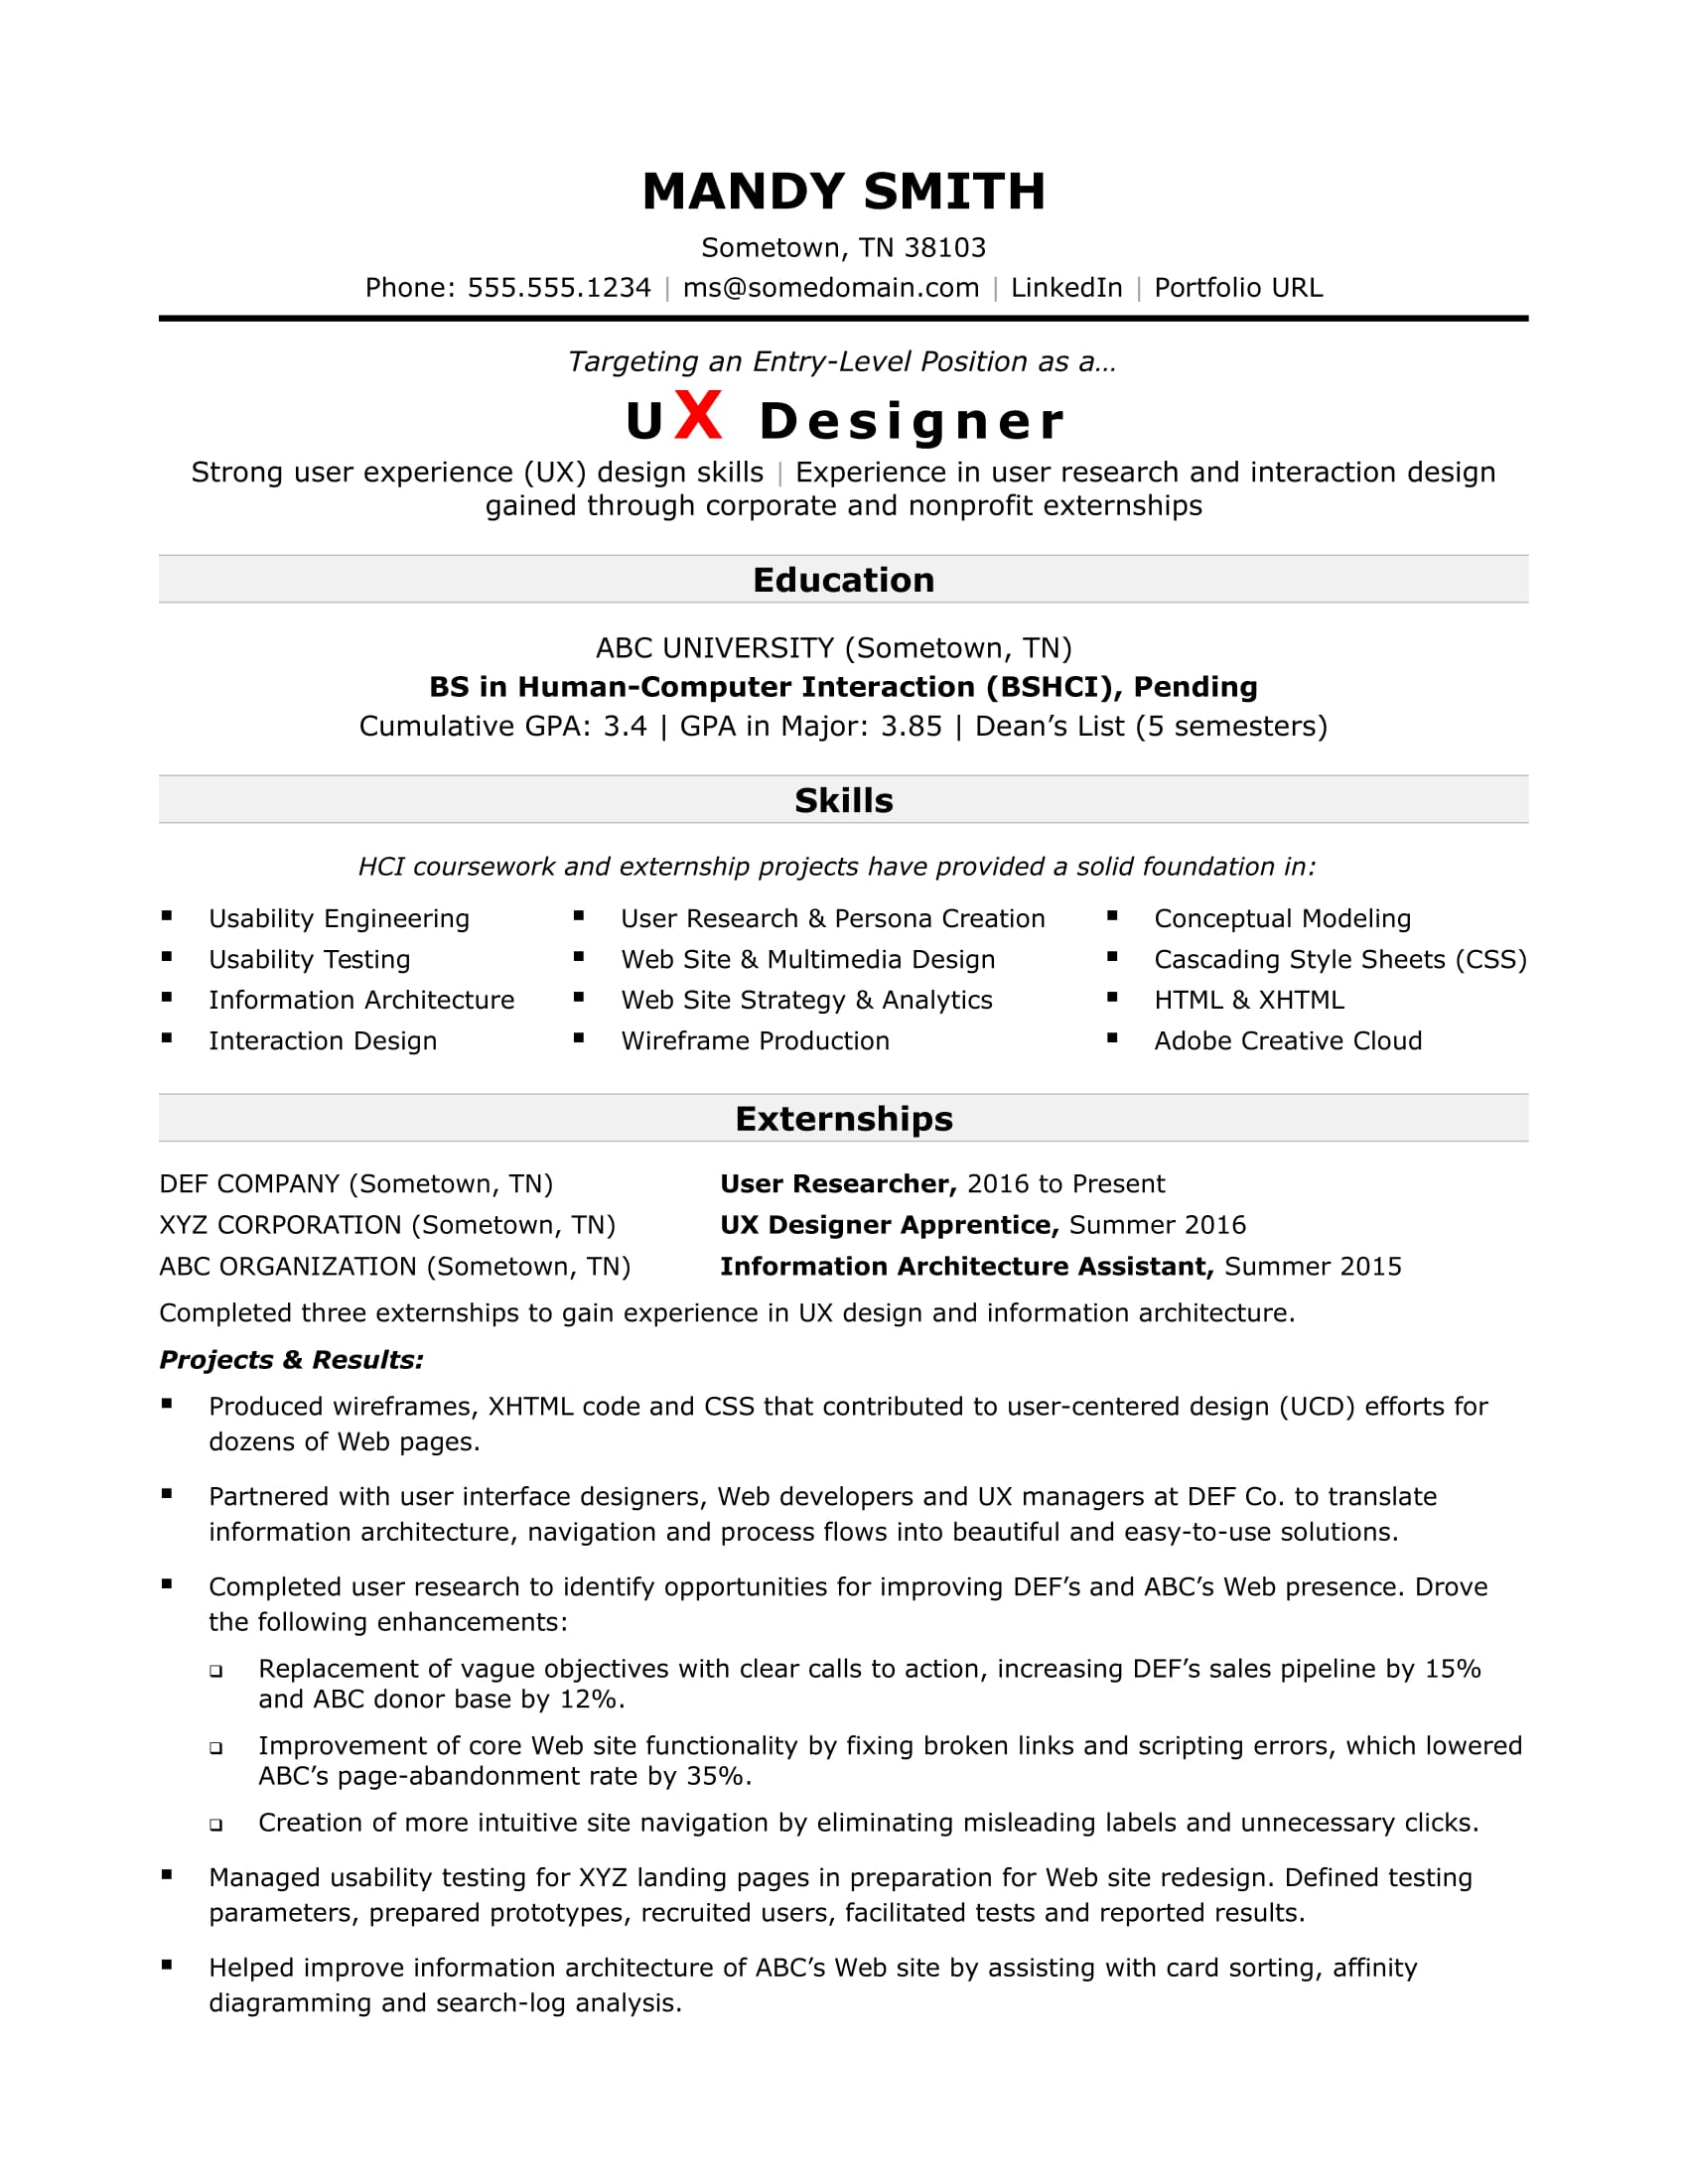 Sample Resume For An Entry Level UX Designer  Resume Technical Skills